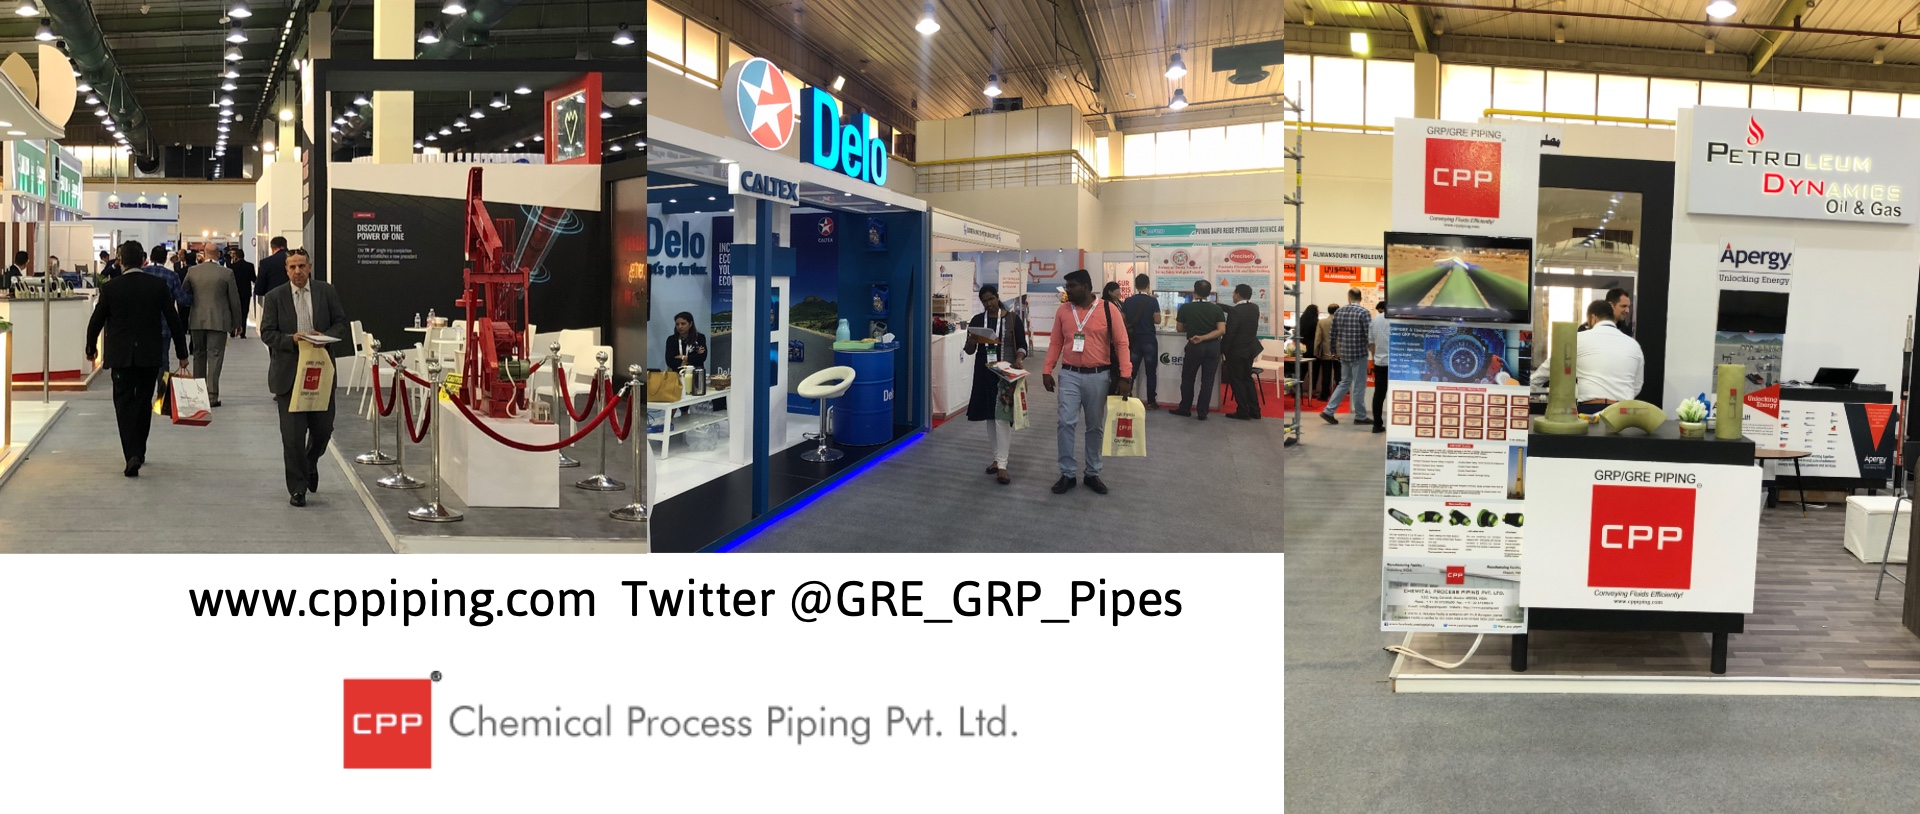 GRE GRP Piping oil gas KOGS KUWAIT Mishref